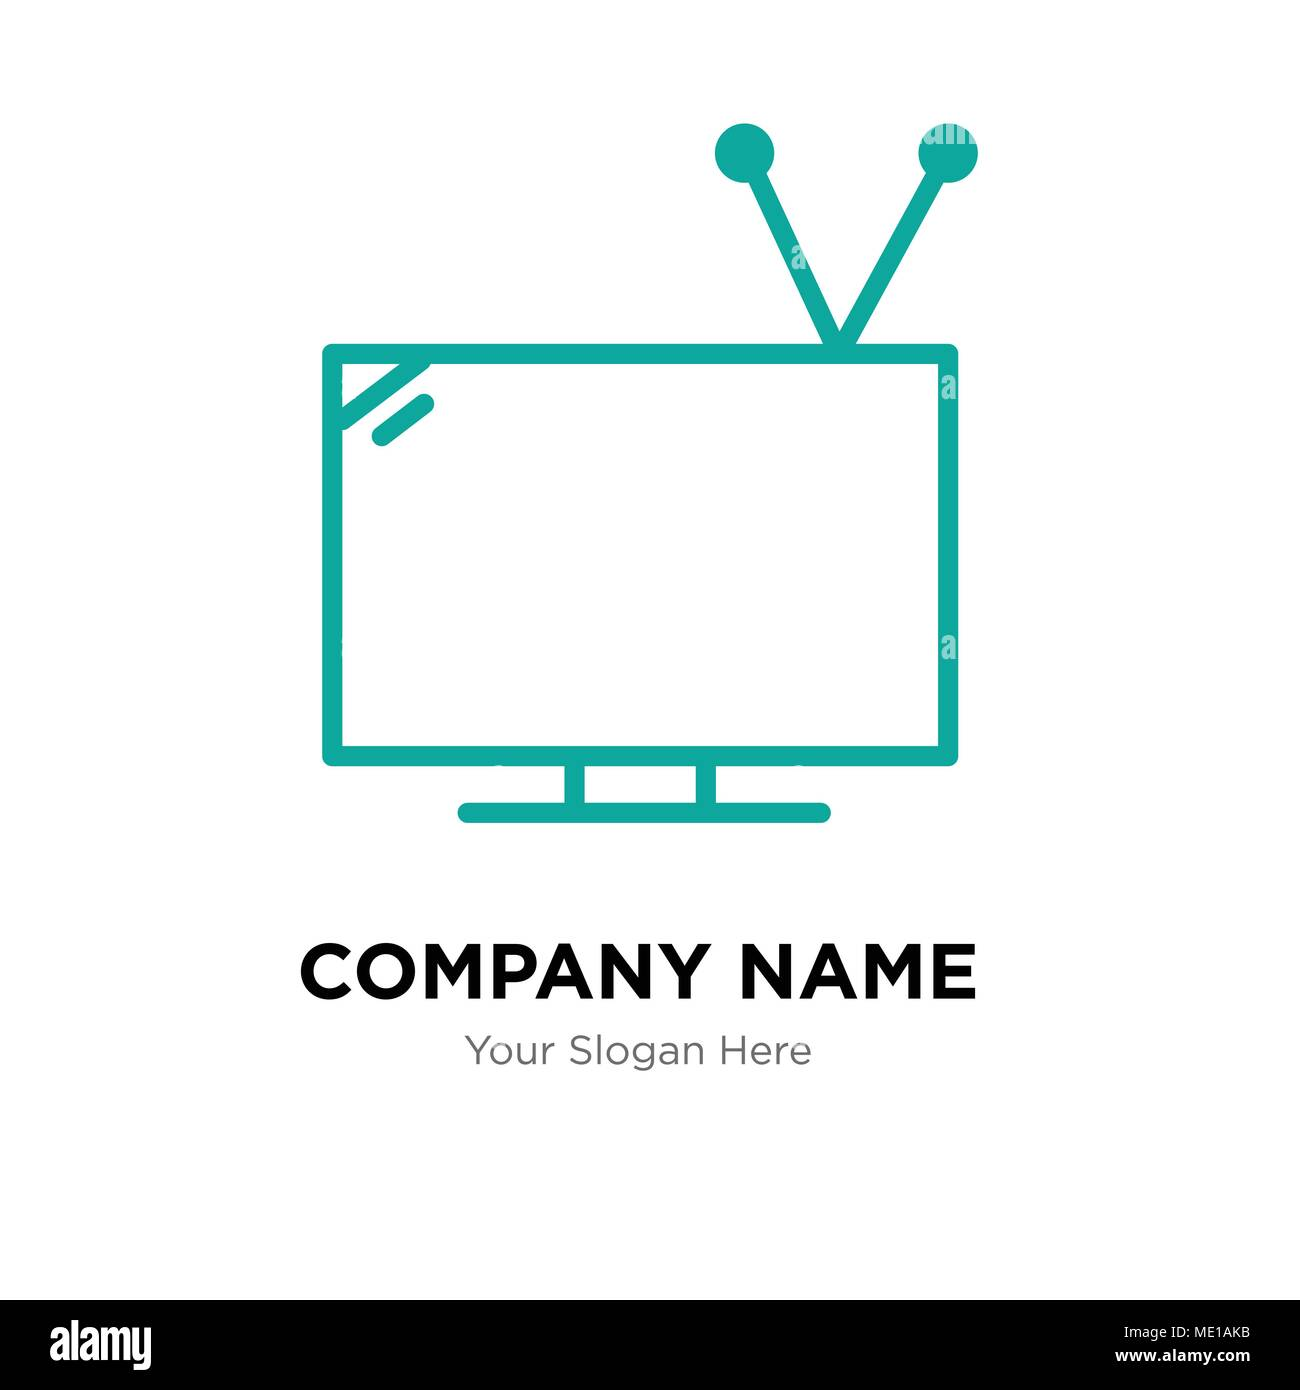 Television with antenna company logo design template, Business corporate vector icon - Stock Image